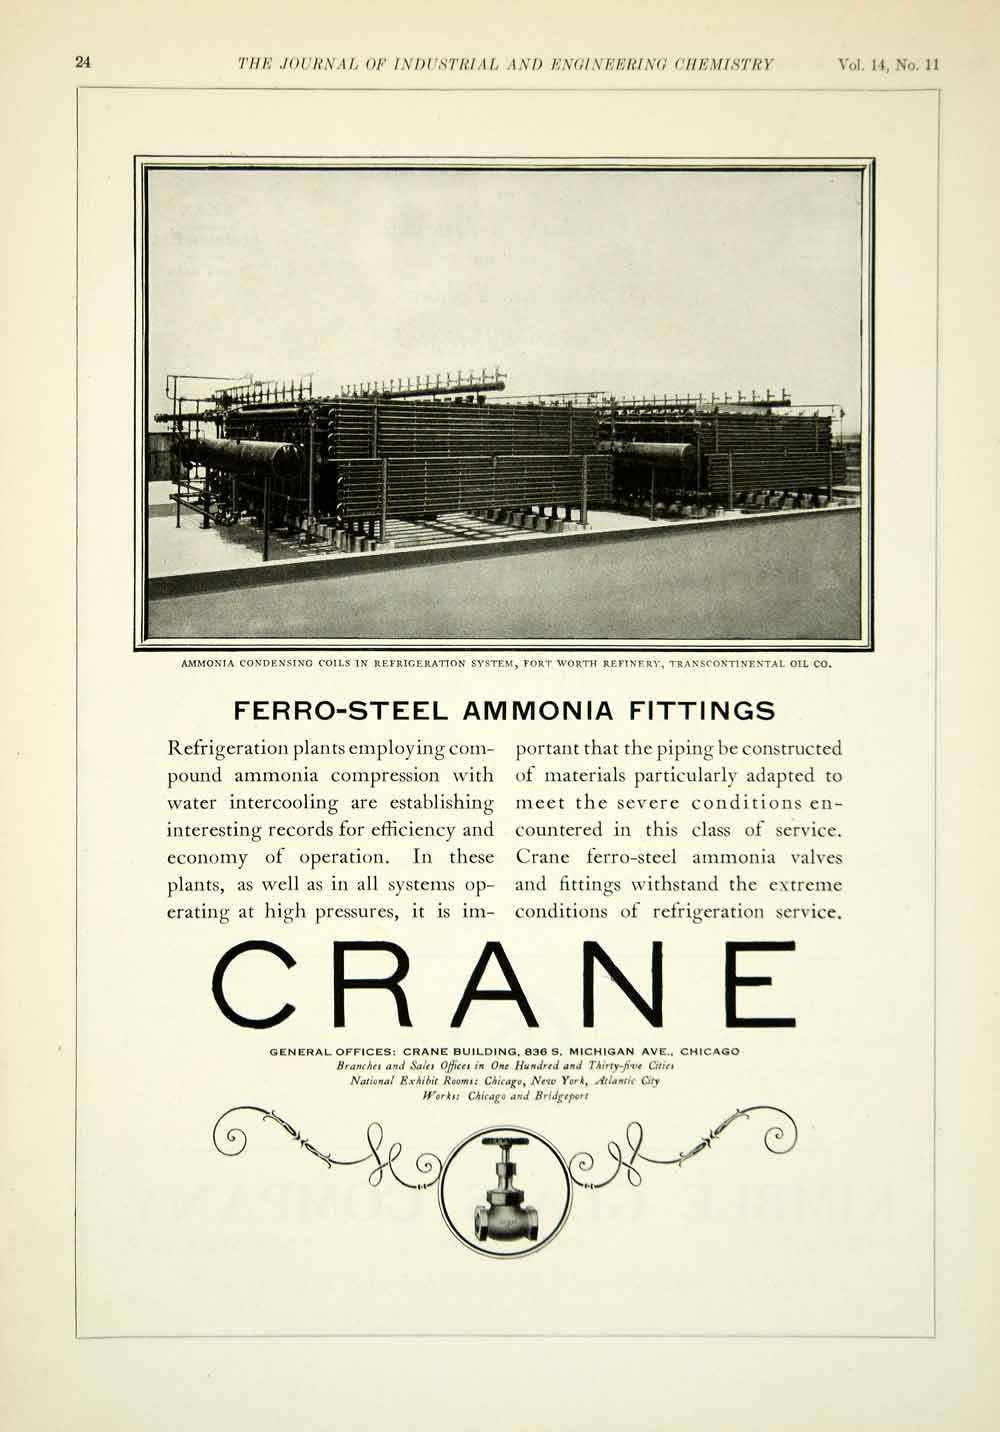 1922 Ad Crane Ferro-Steel Ammonia Fittings Ft Worth Oil Refinery Industrial IEC2